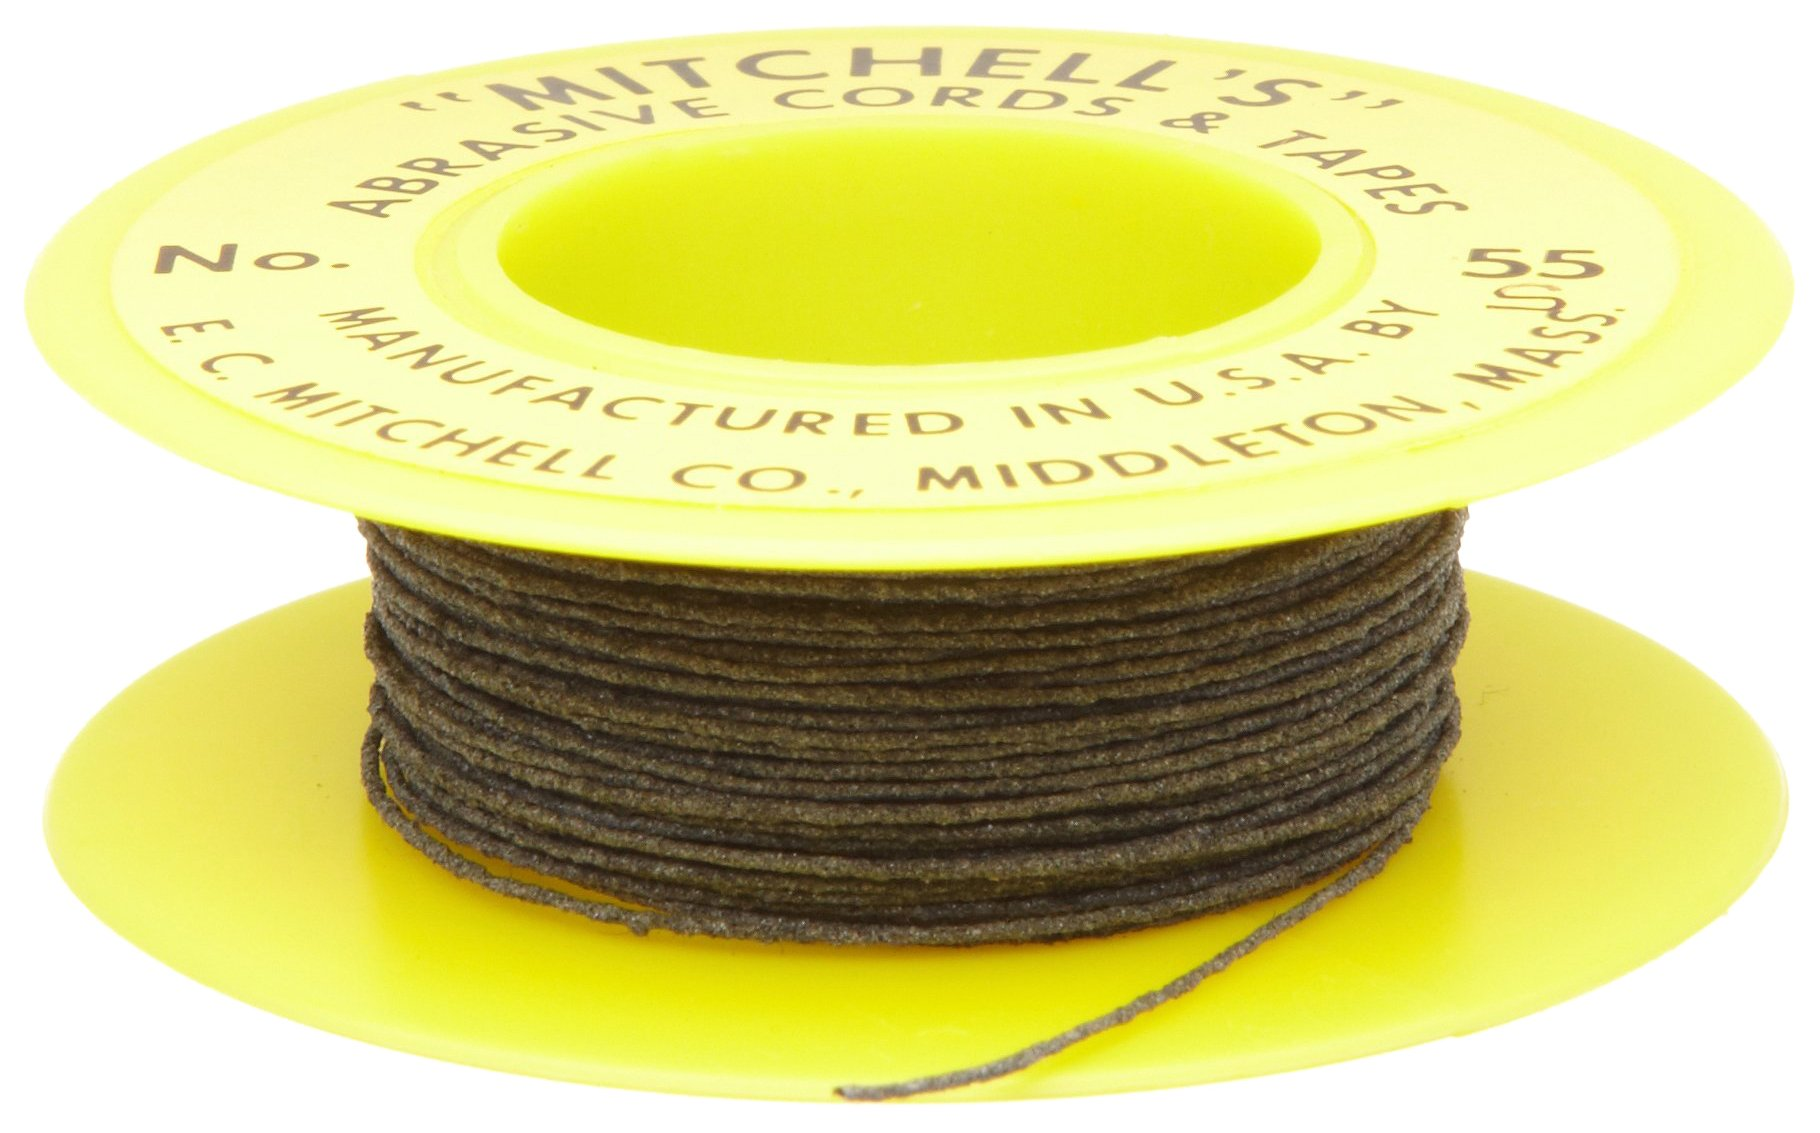 Mitchell Abrasives 55-S Round Abrasive Cord, Silicon Carbide 200 Grit .018'' Diameter x 25 Feet by Mitchell Abrasives